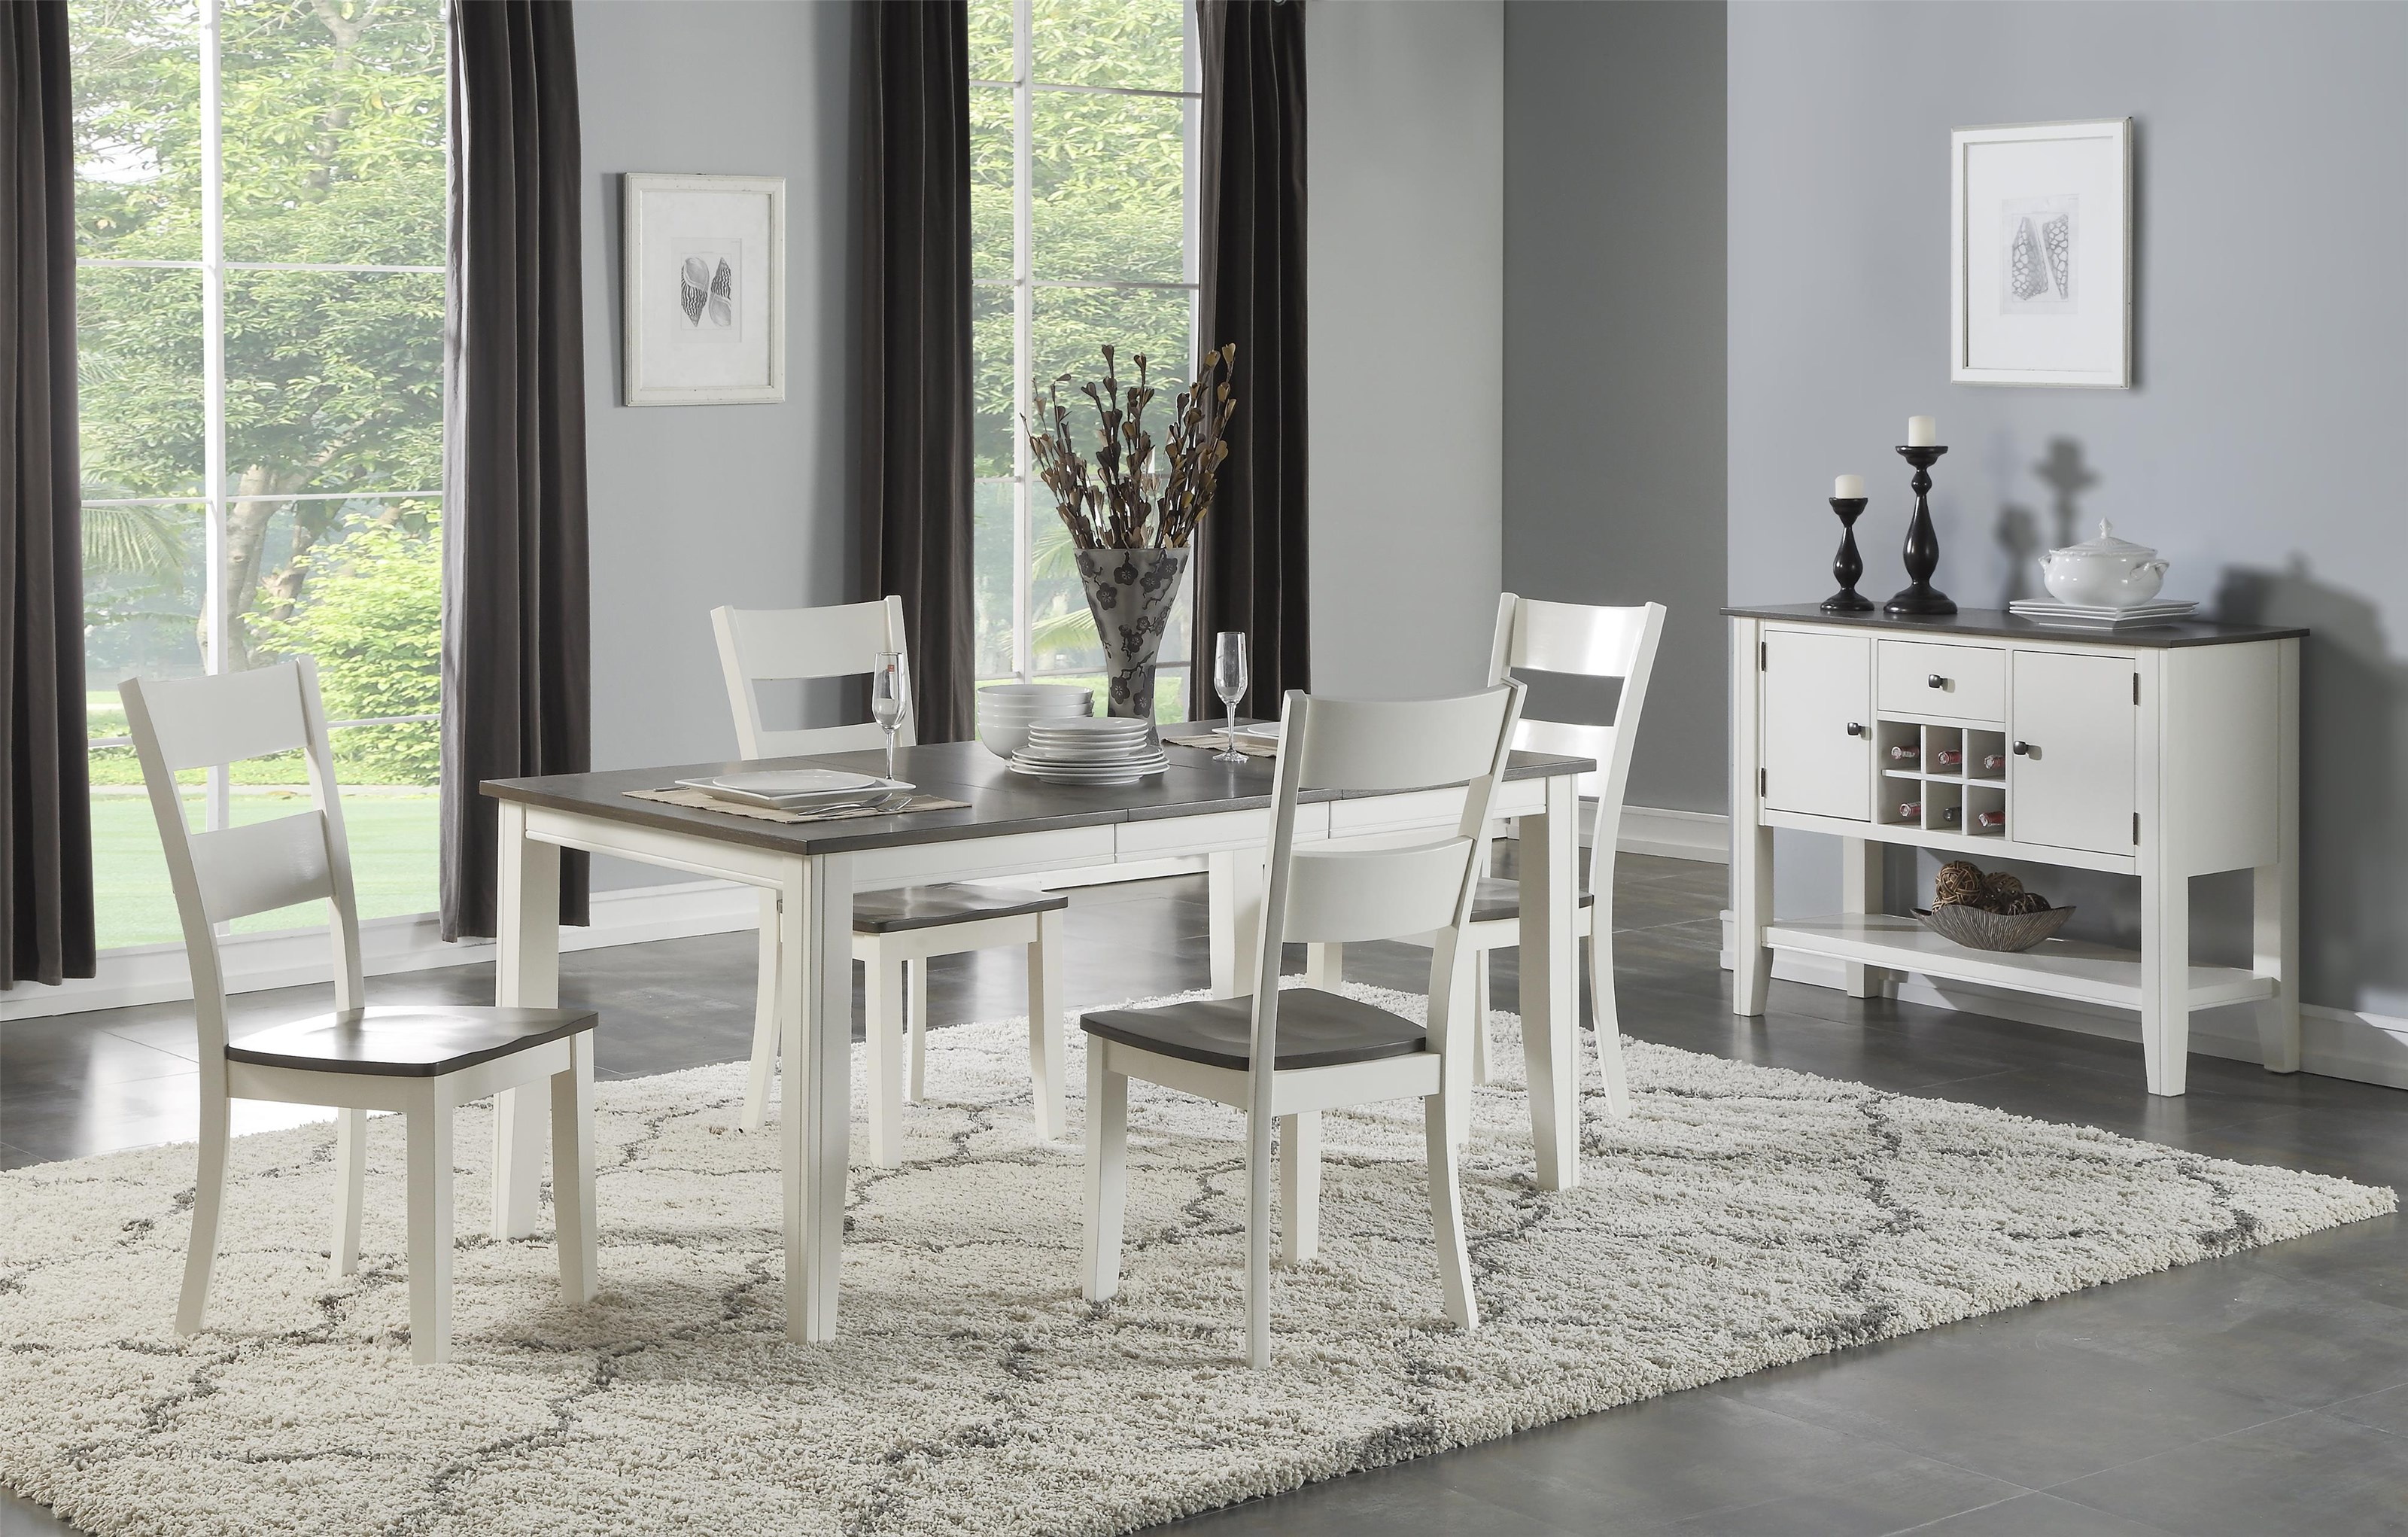 Carey White Table + 4 Chairs by HH at Walker's Furniture